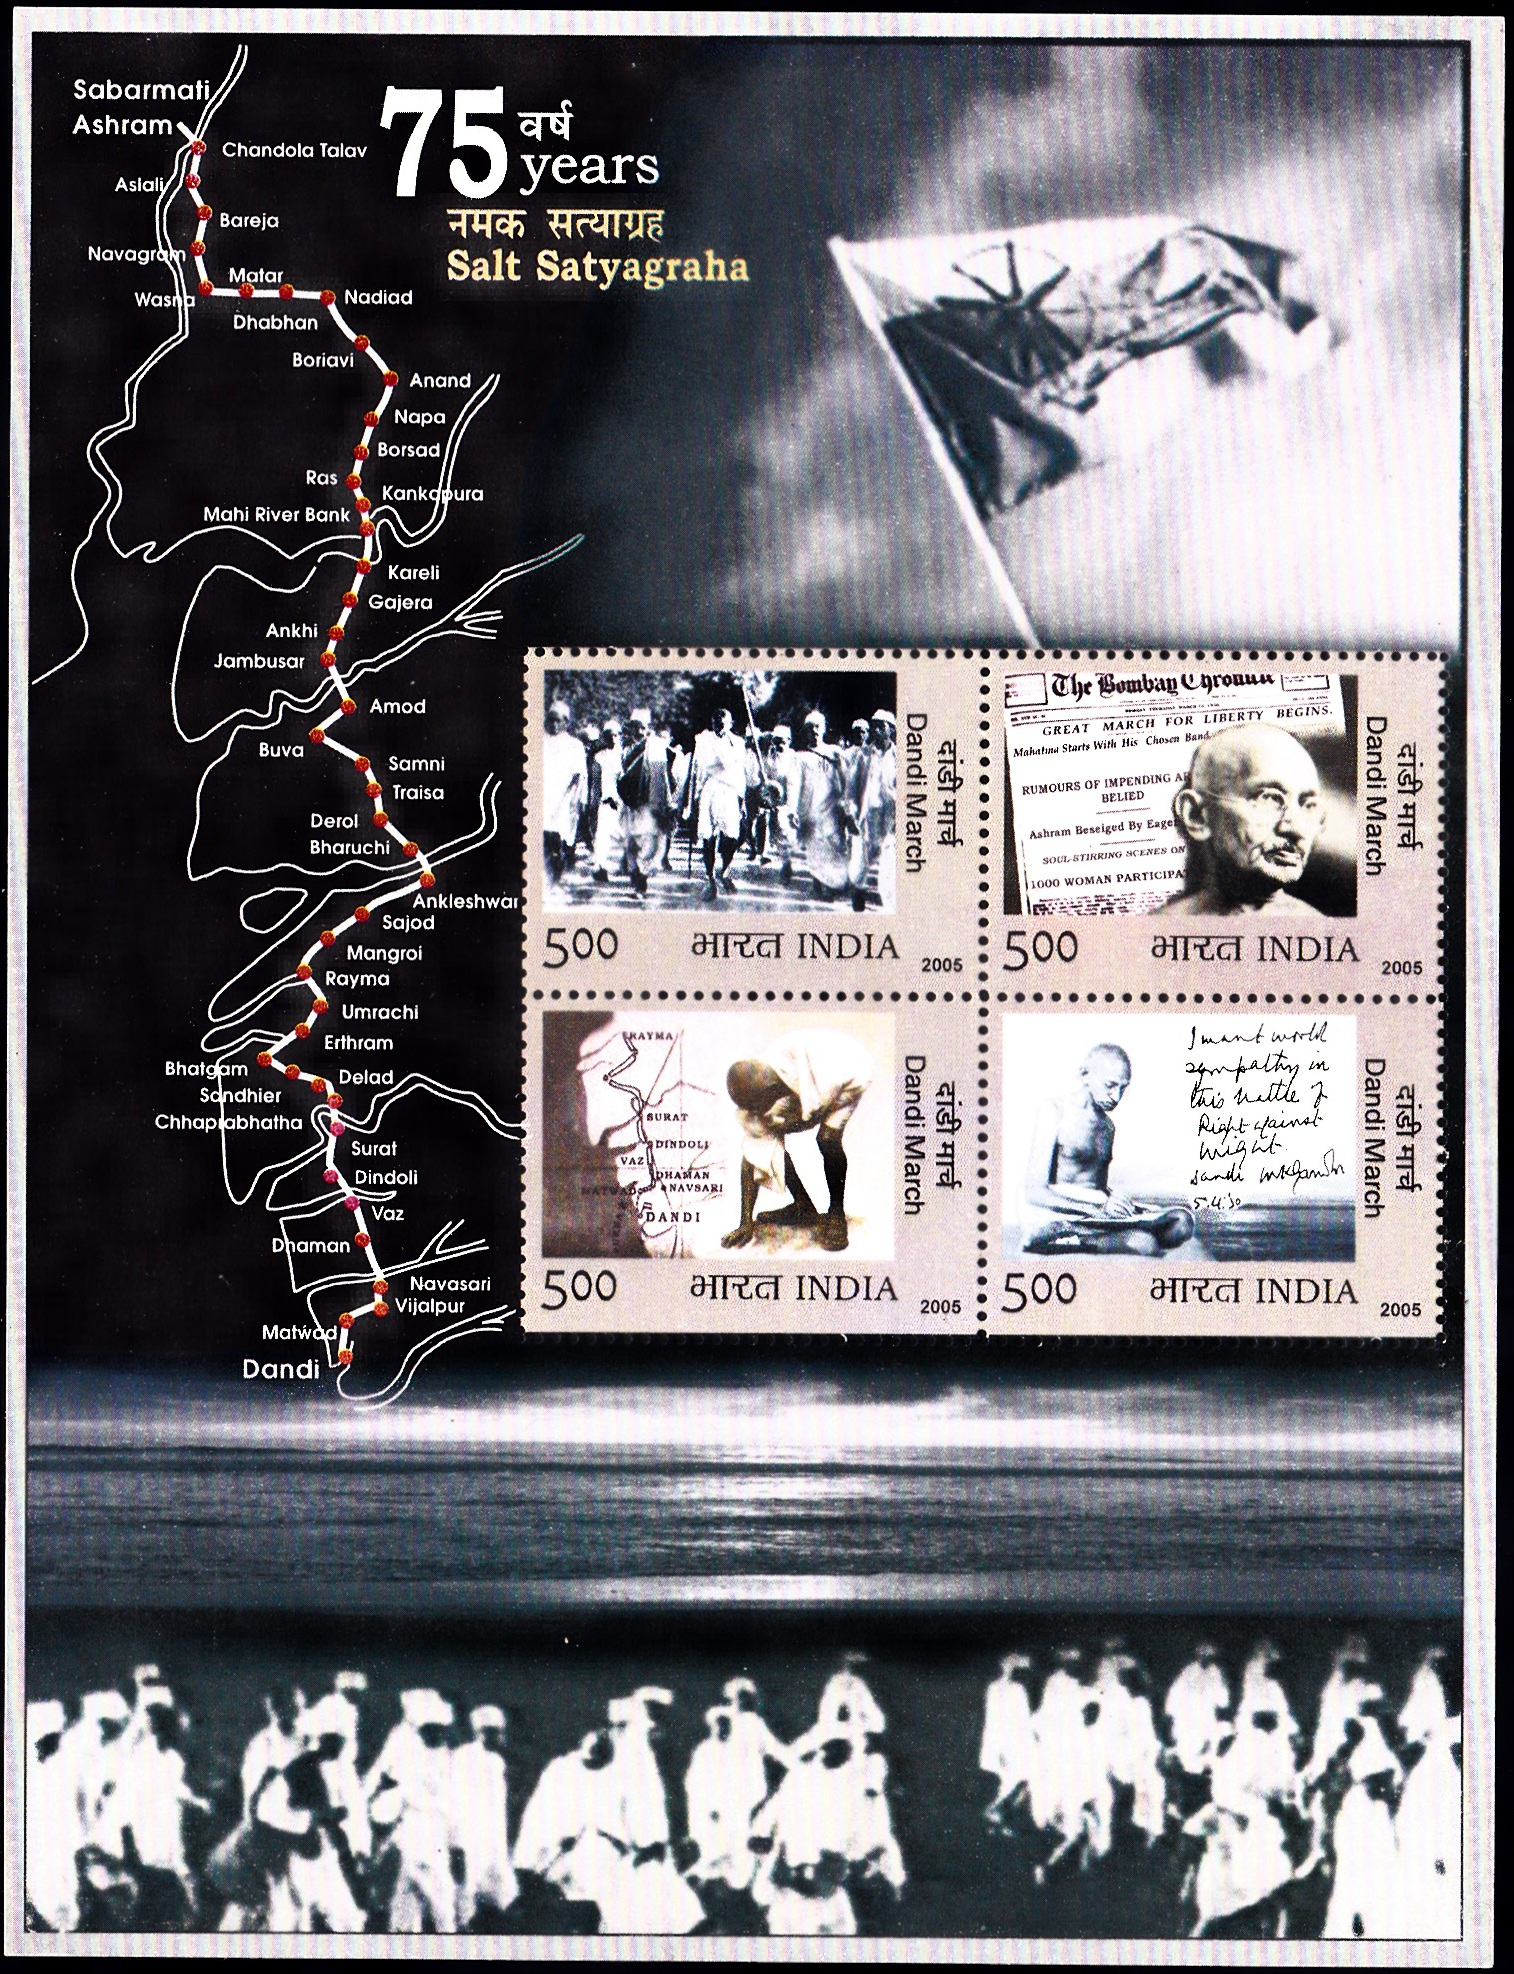 Various Facets of Mahatma Gandhi : Bombay Chronicle, Route of Salt March